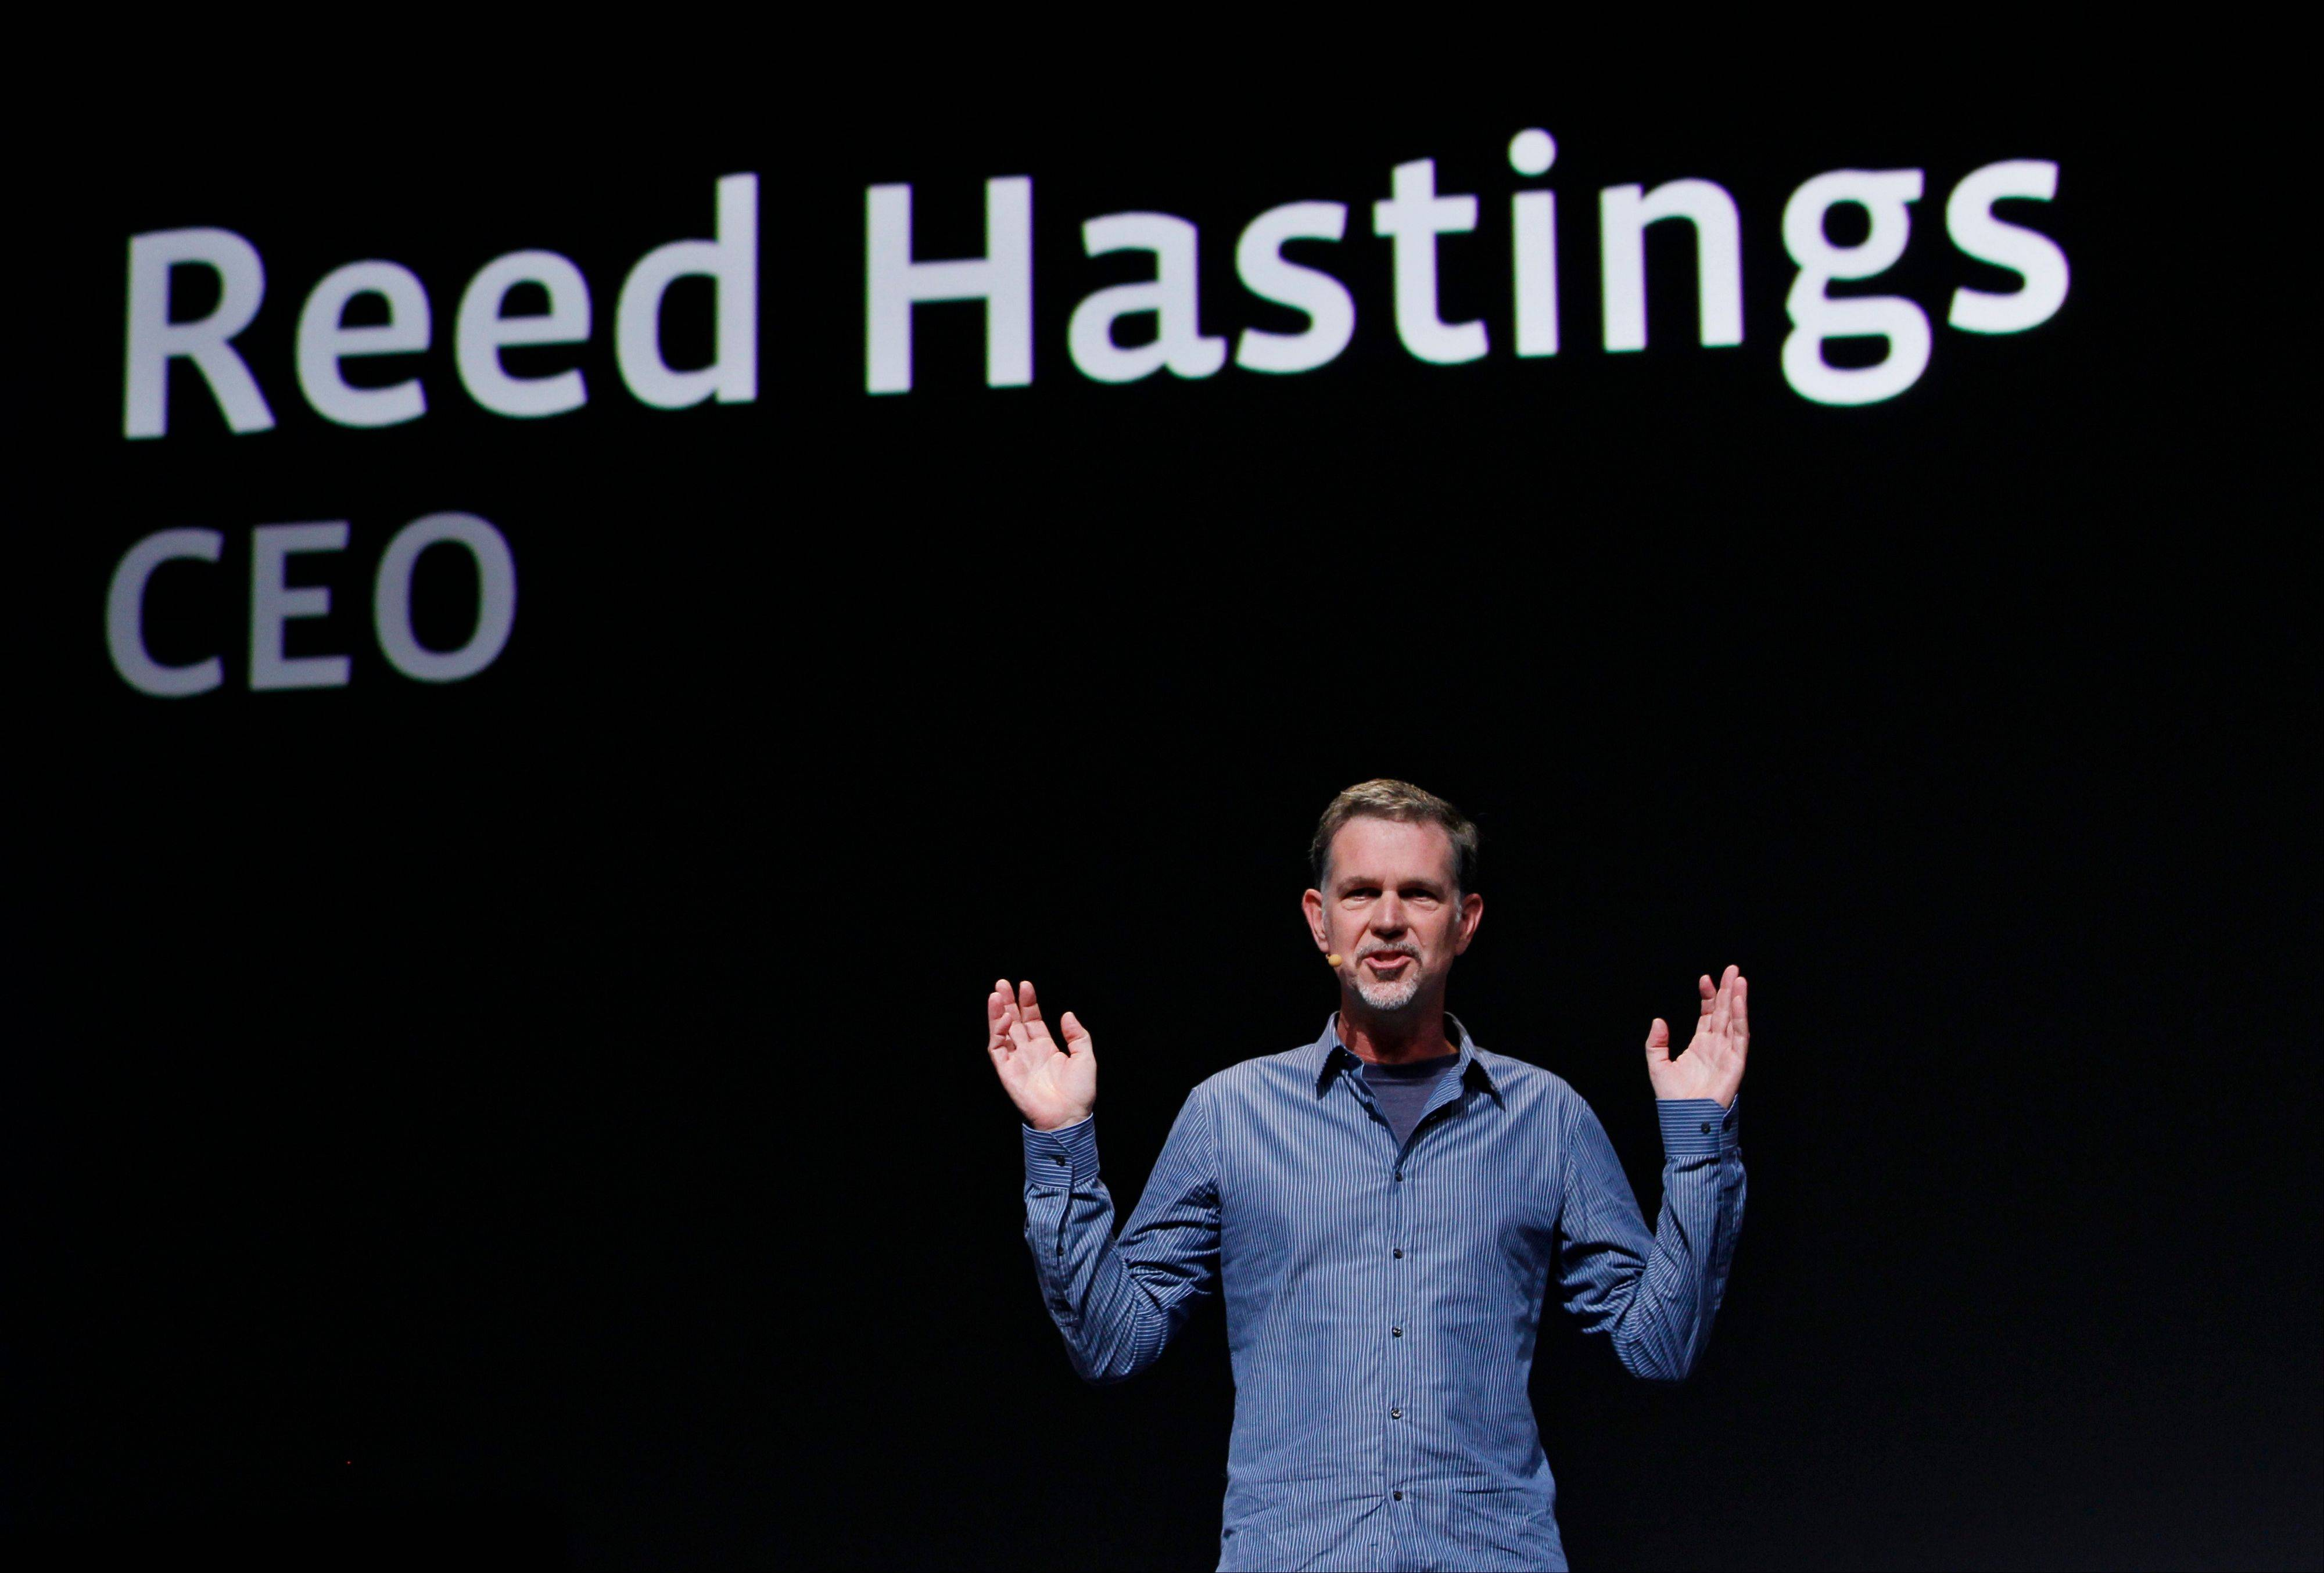 Netflix CEO Reed Hastings has led a resurgence of investor interest in Netflix, whose stock is the best performing among Standard & Poor's 500 Index in 2013.